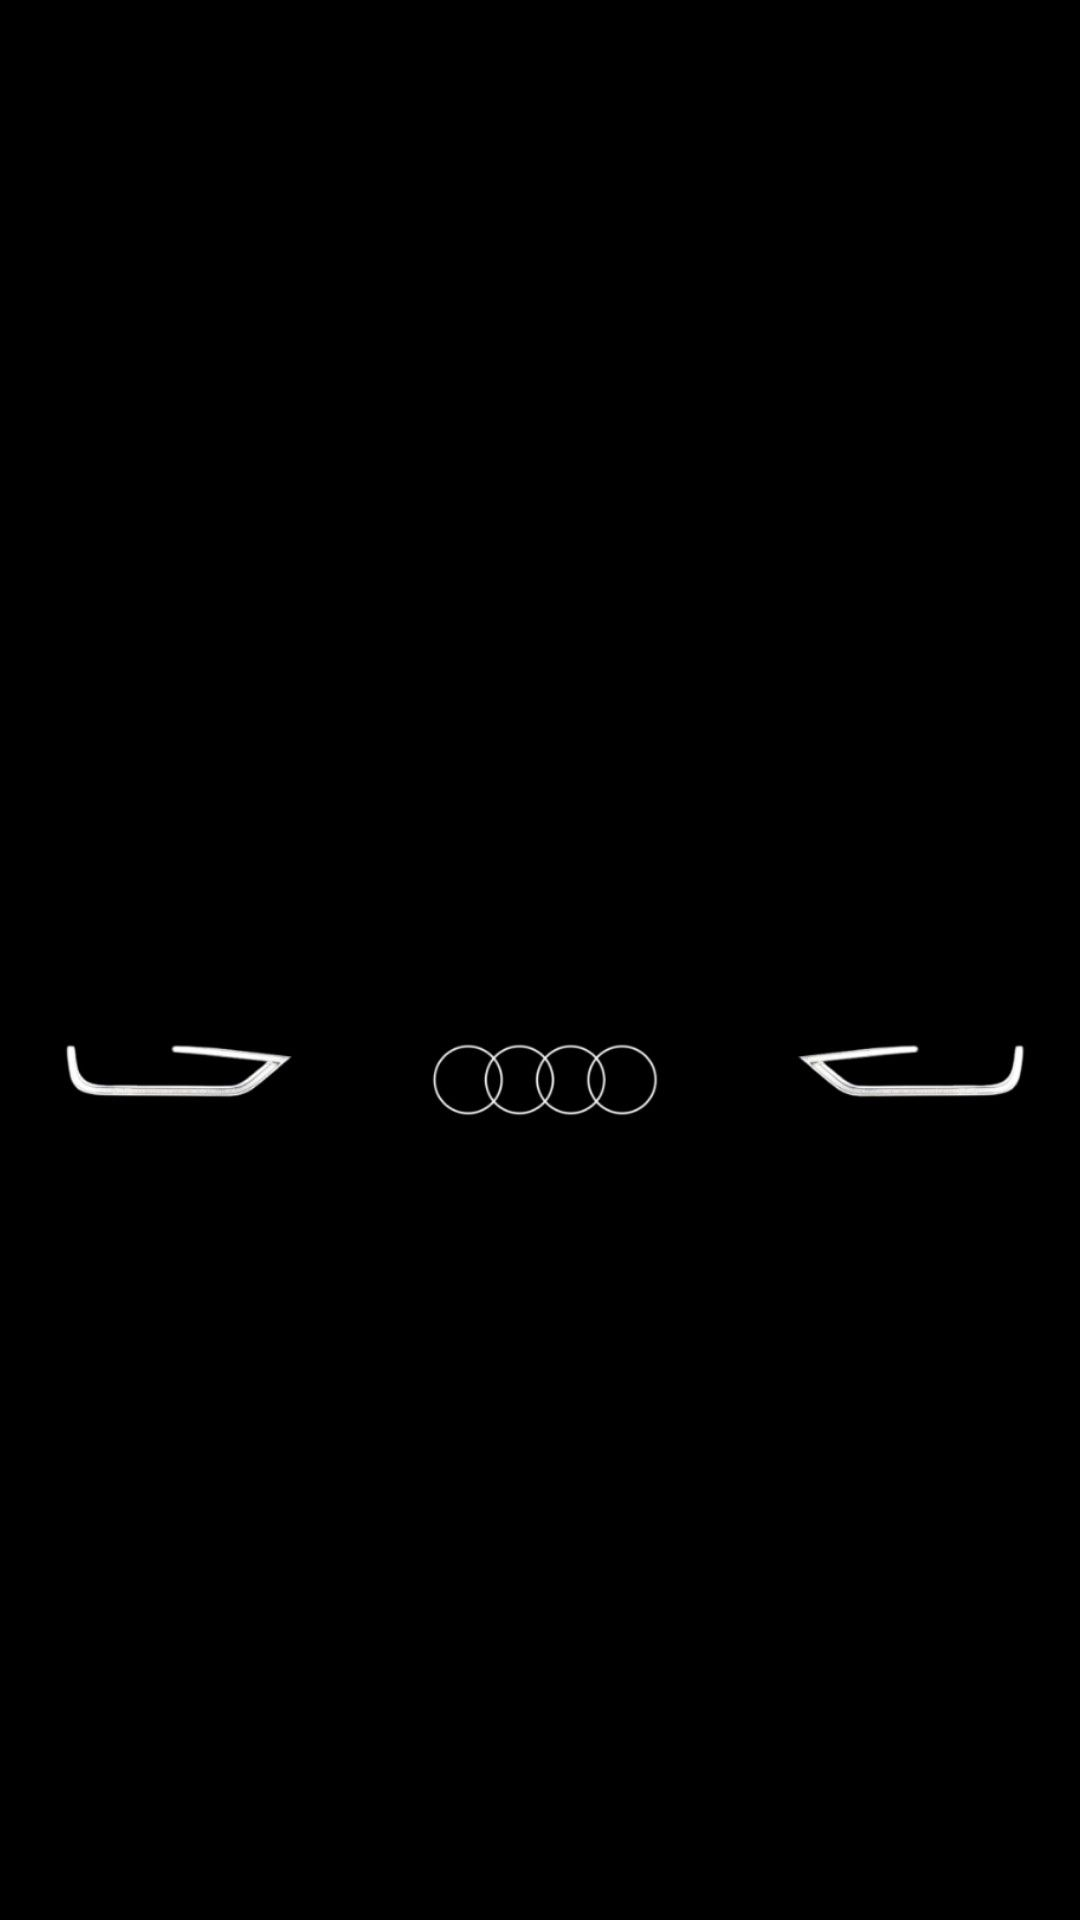 Pin By F Hd On Cars Car Brands Logos Car Wallpapers Audi Cars